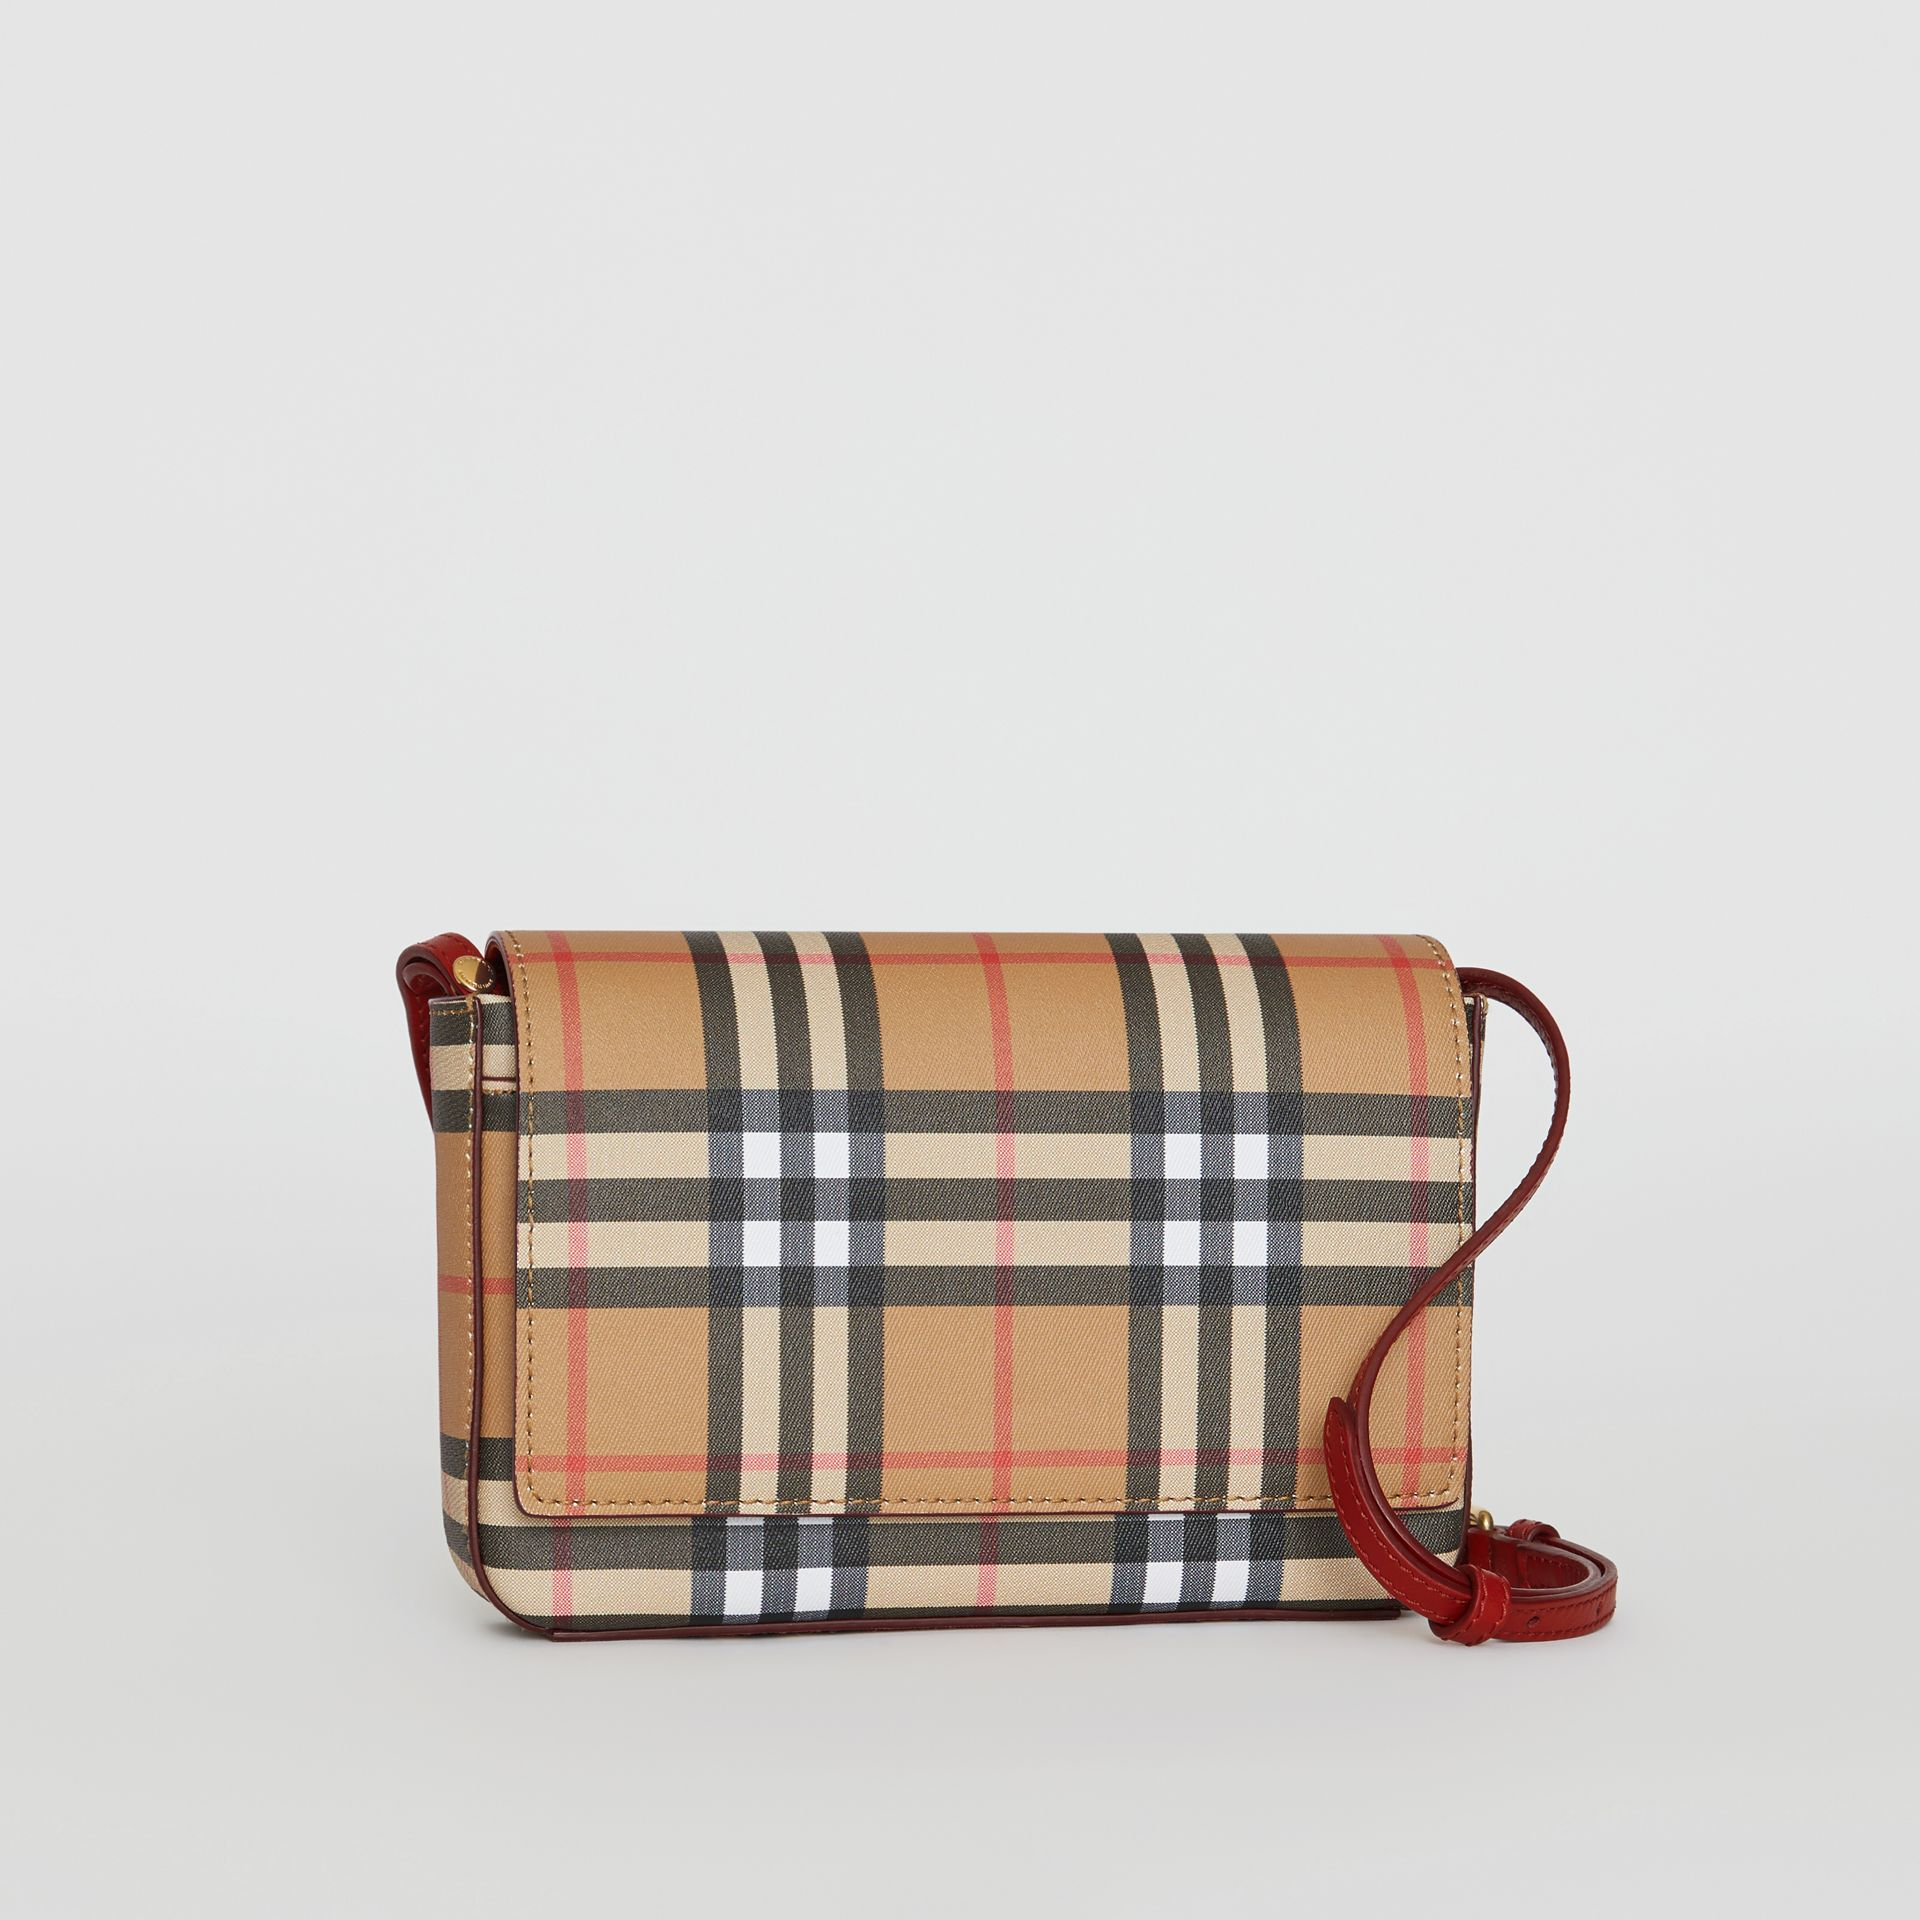 Small Vintage Check and Leather Crossbody Bag in Crimson - Women | Burberry - gallery image 6